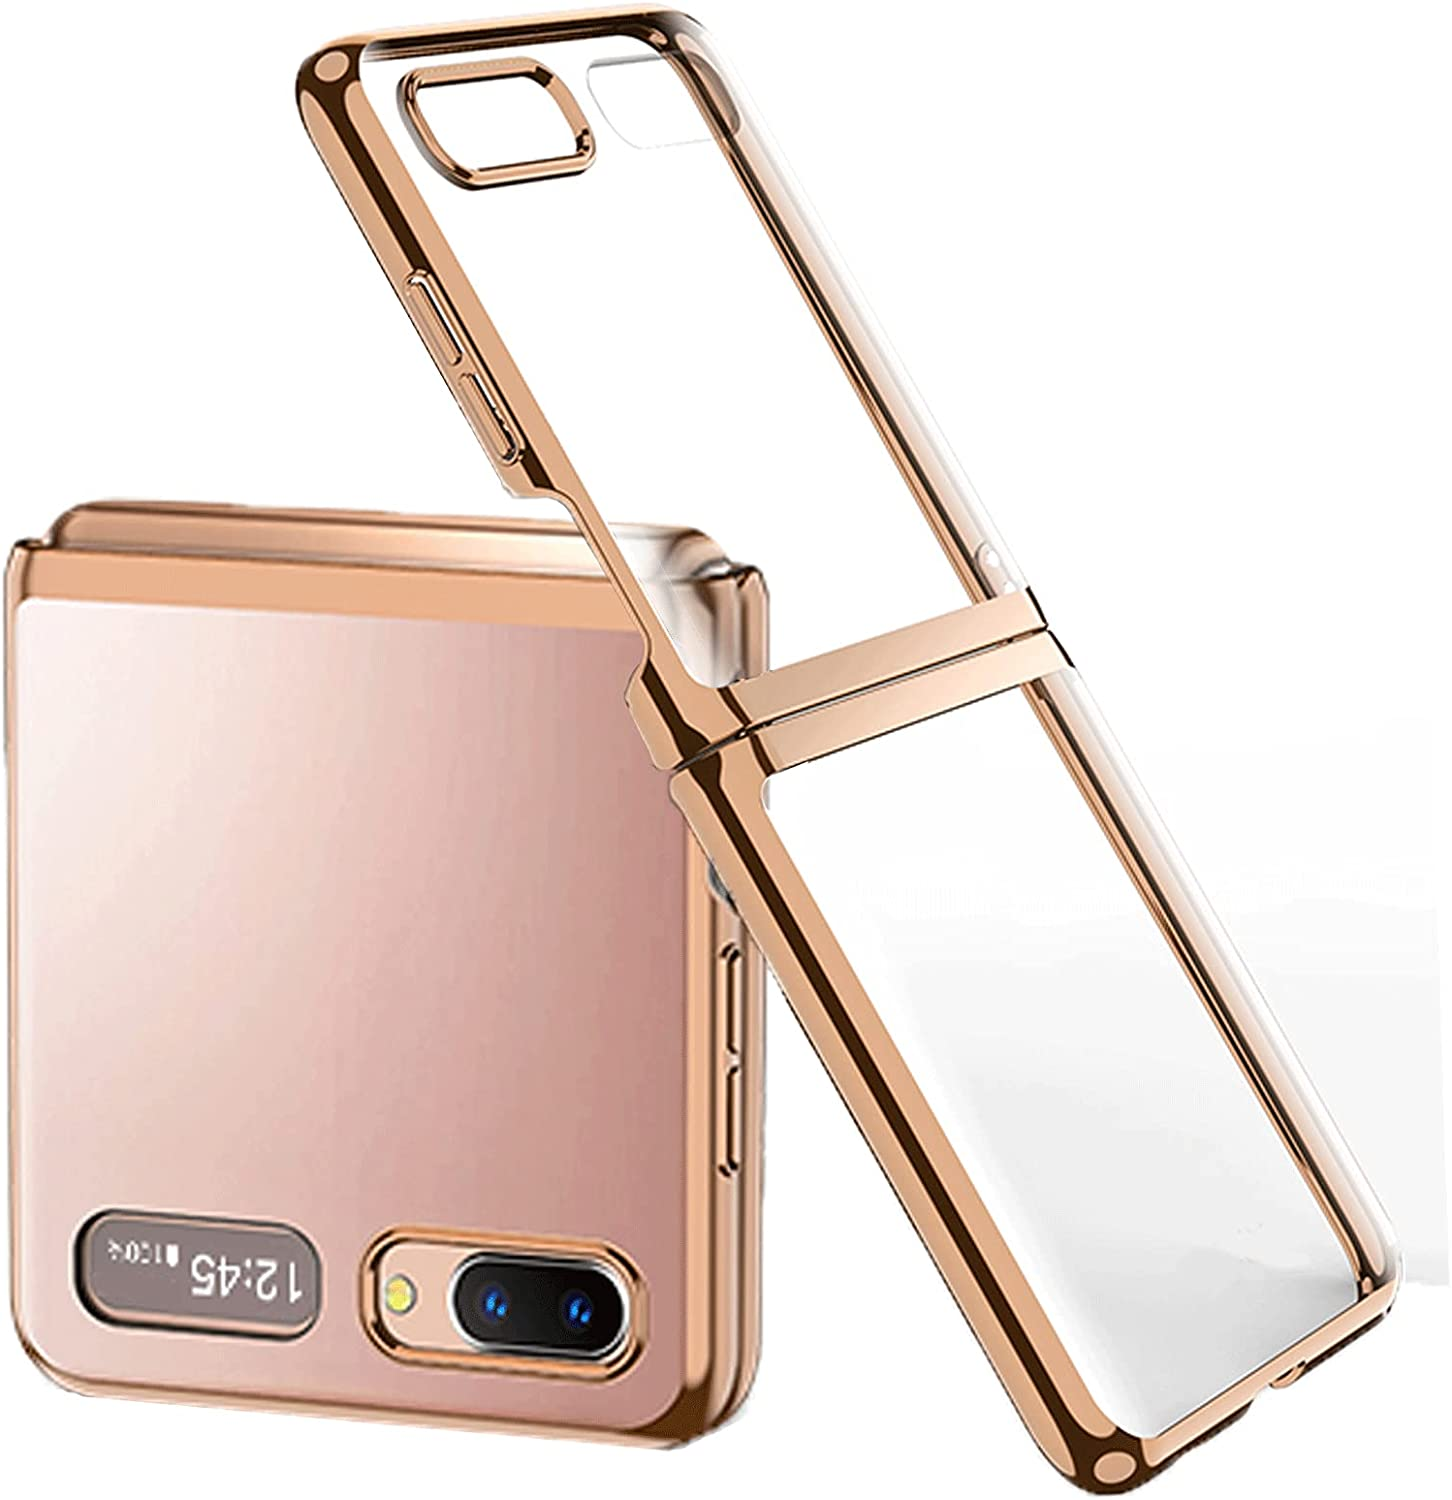 Miimall Compatible with Samsung Galaxy Z Flip 5G 2020 Case, Shockproof and Anti-Scratch Slim Thin Hard PC Bumper Protective Transparent Phone Case for Samsung Galaxy Z Flip(Gold)